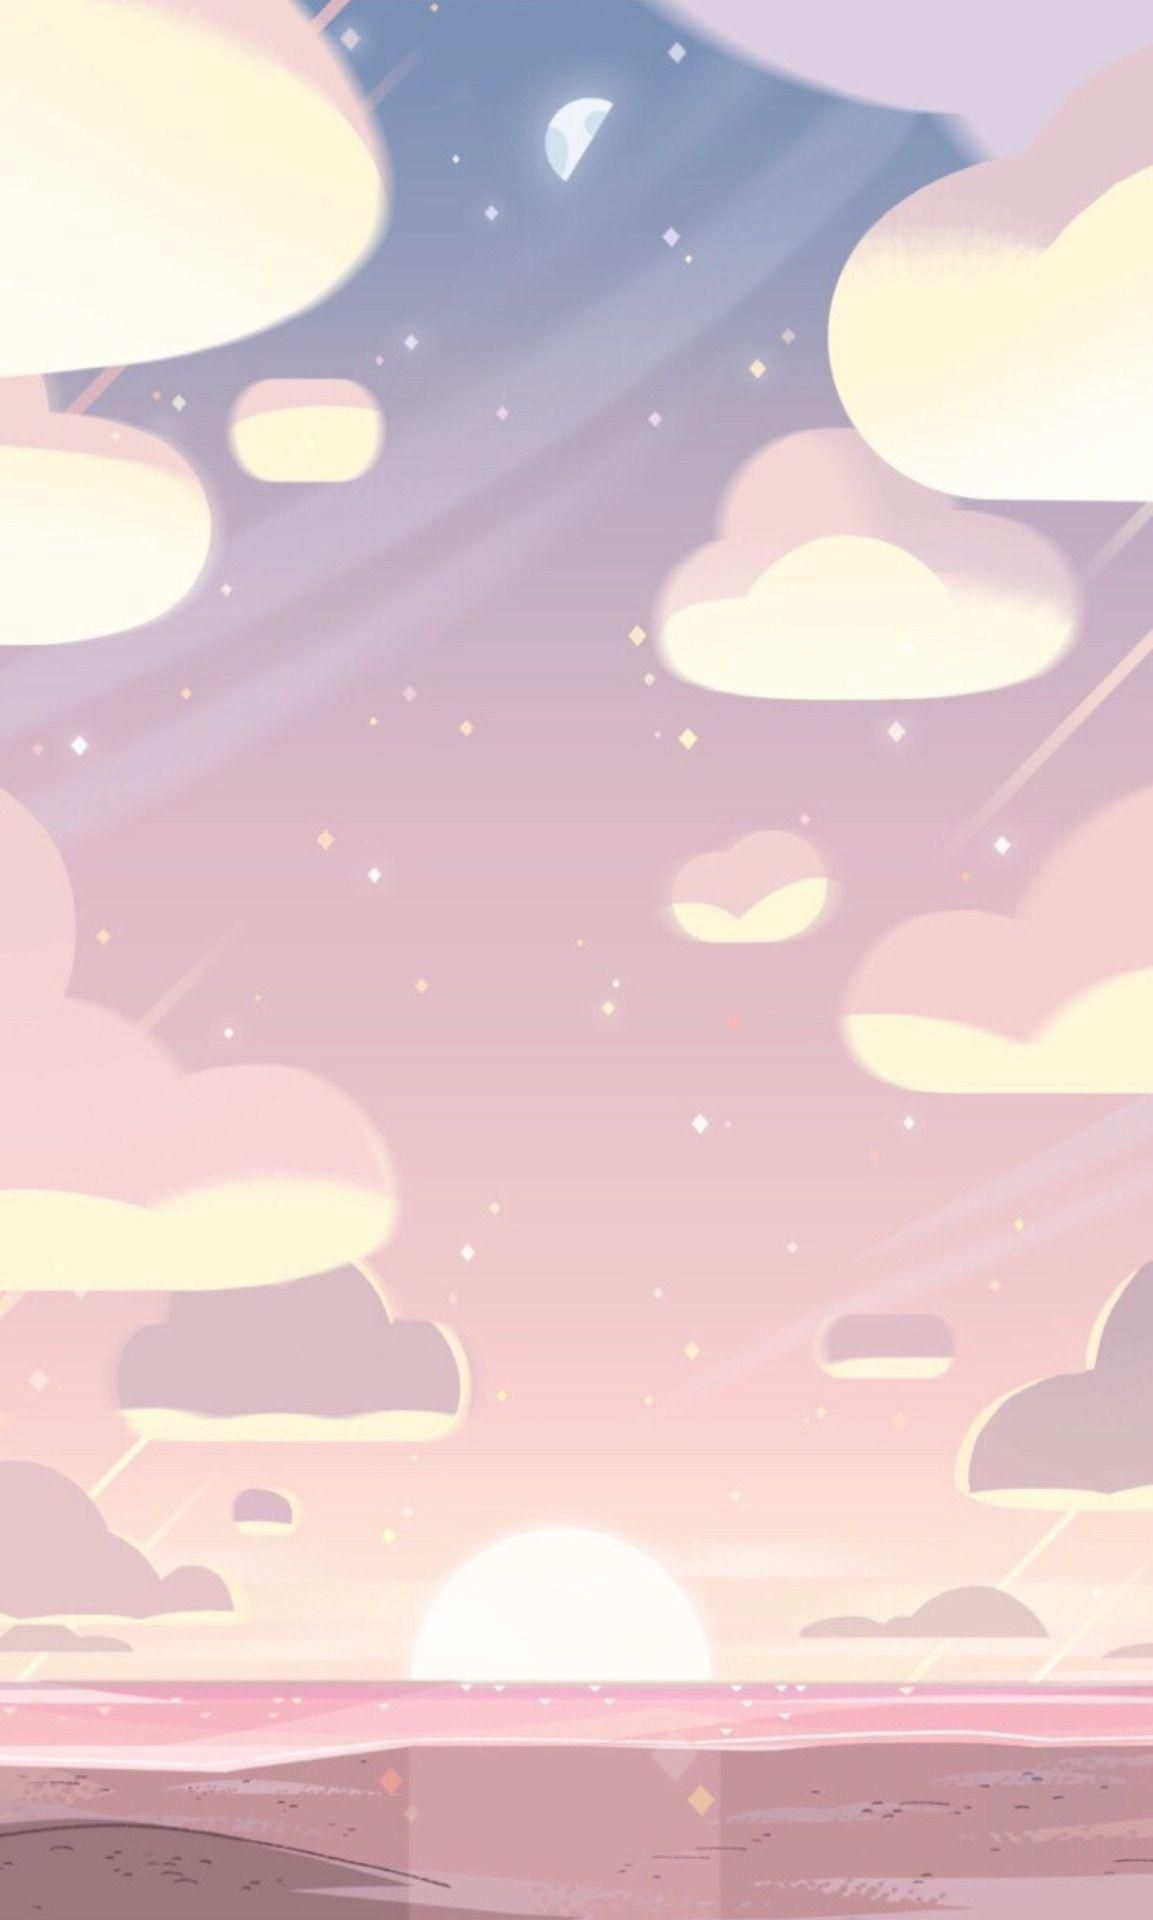 Aesthetic Wallpaper For Phone 3d Wallpapers In 2019 With Aesthetic Wallpapers Steven Universe In 2020 Aesthetic Pastel Wallpaper Aesthetic Wallpapers Steven Universe Wallpaper